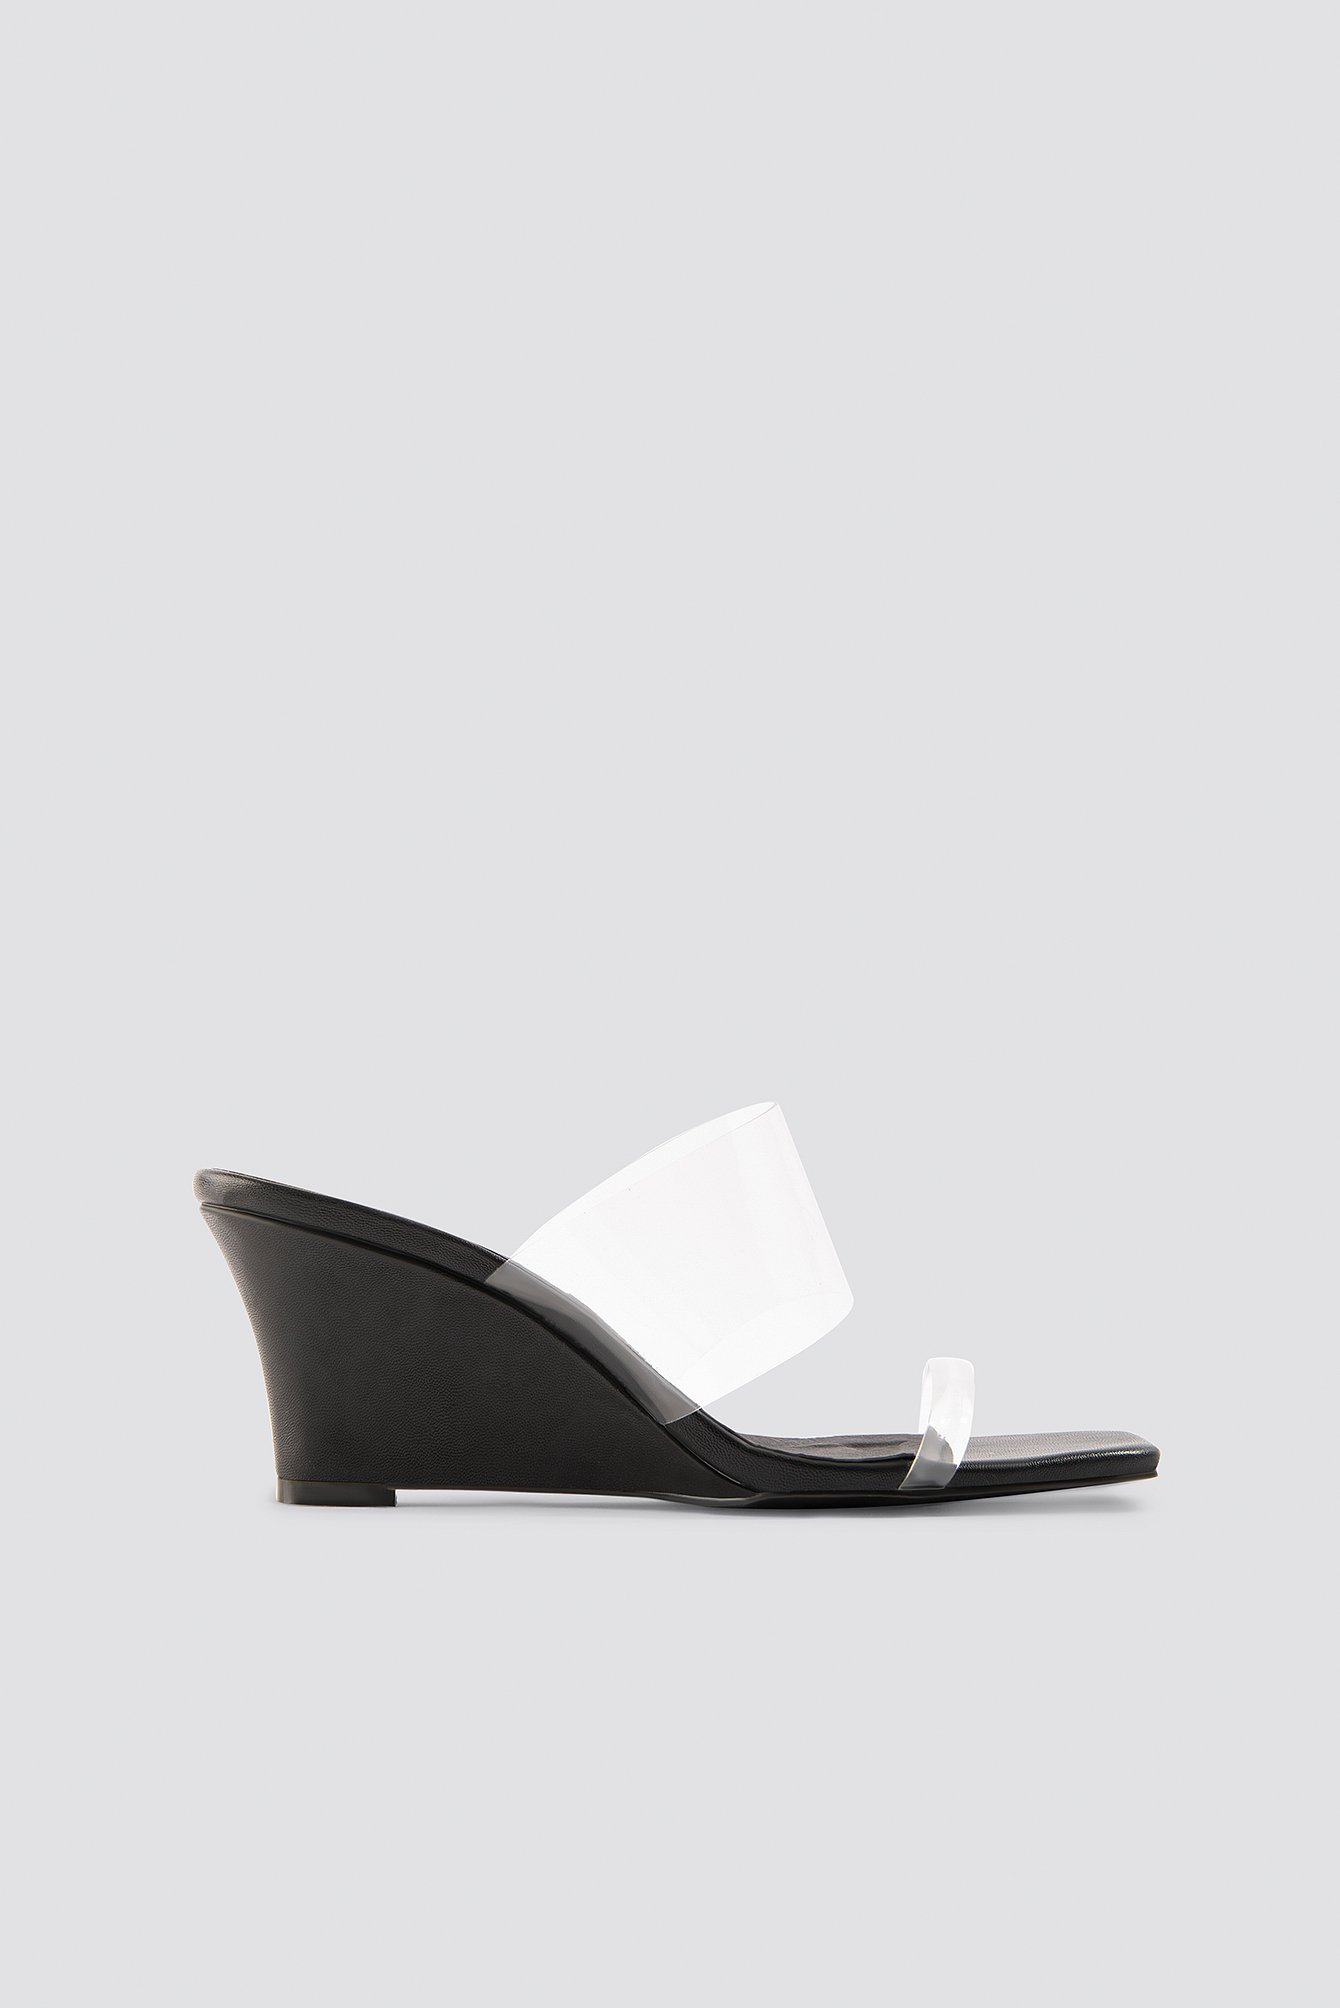 na-kd shoes -  Transparent Wedge Heel Sandals - Black